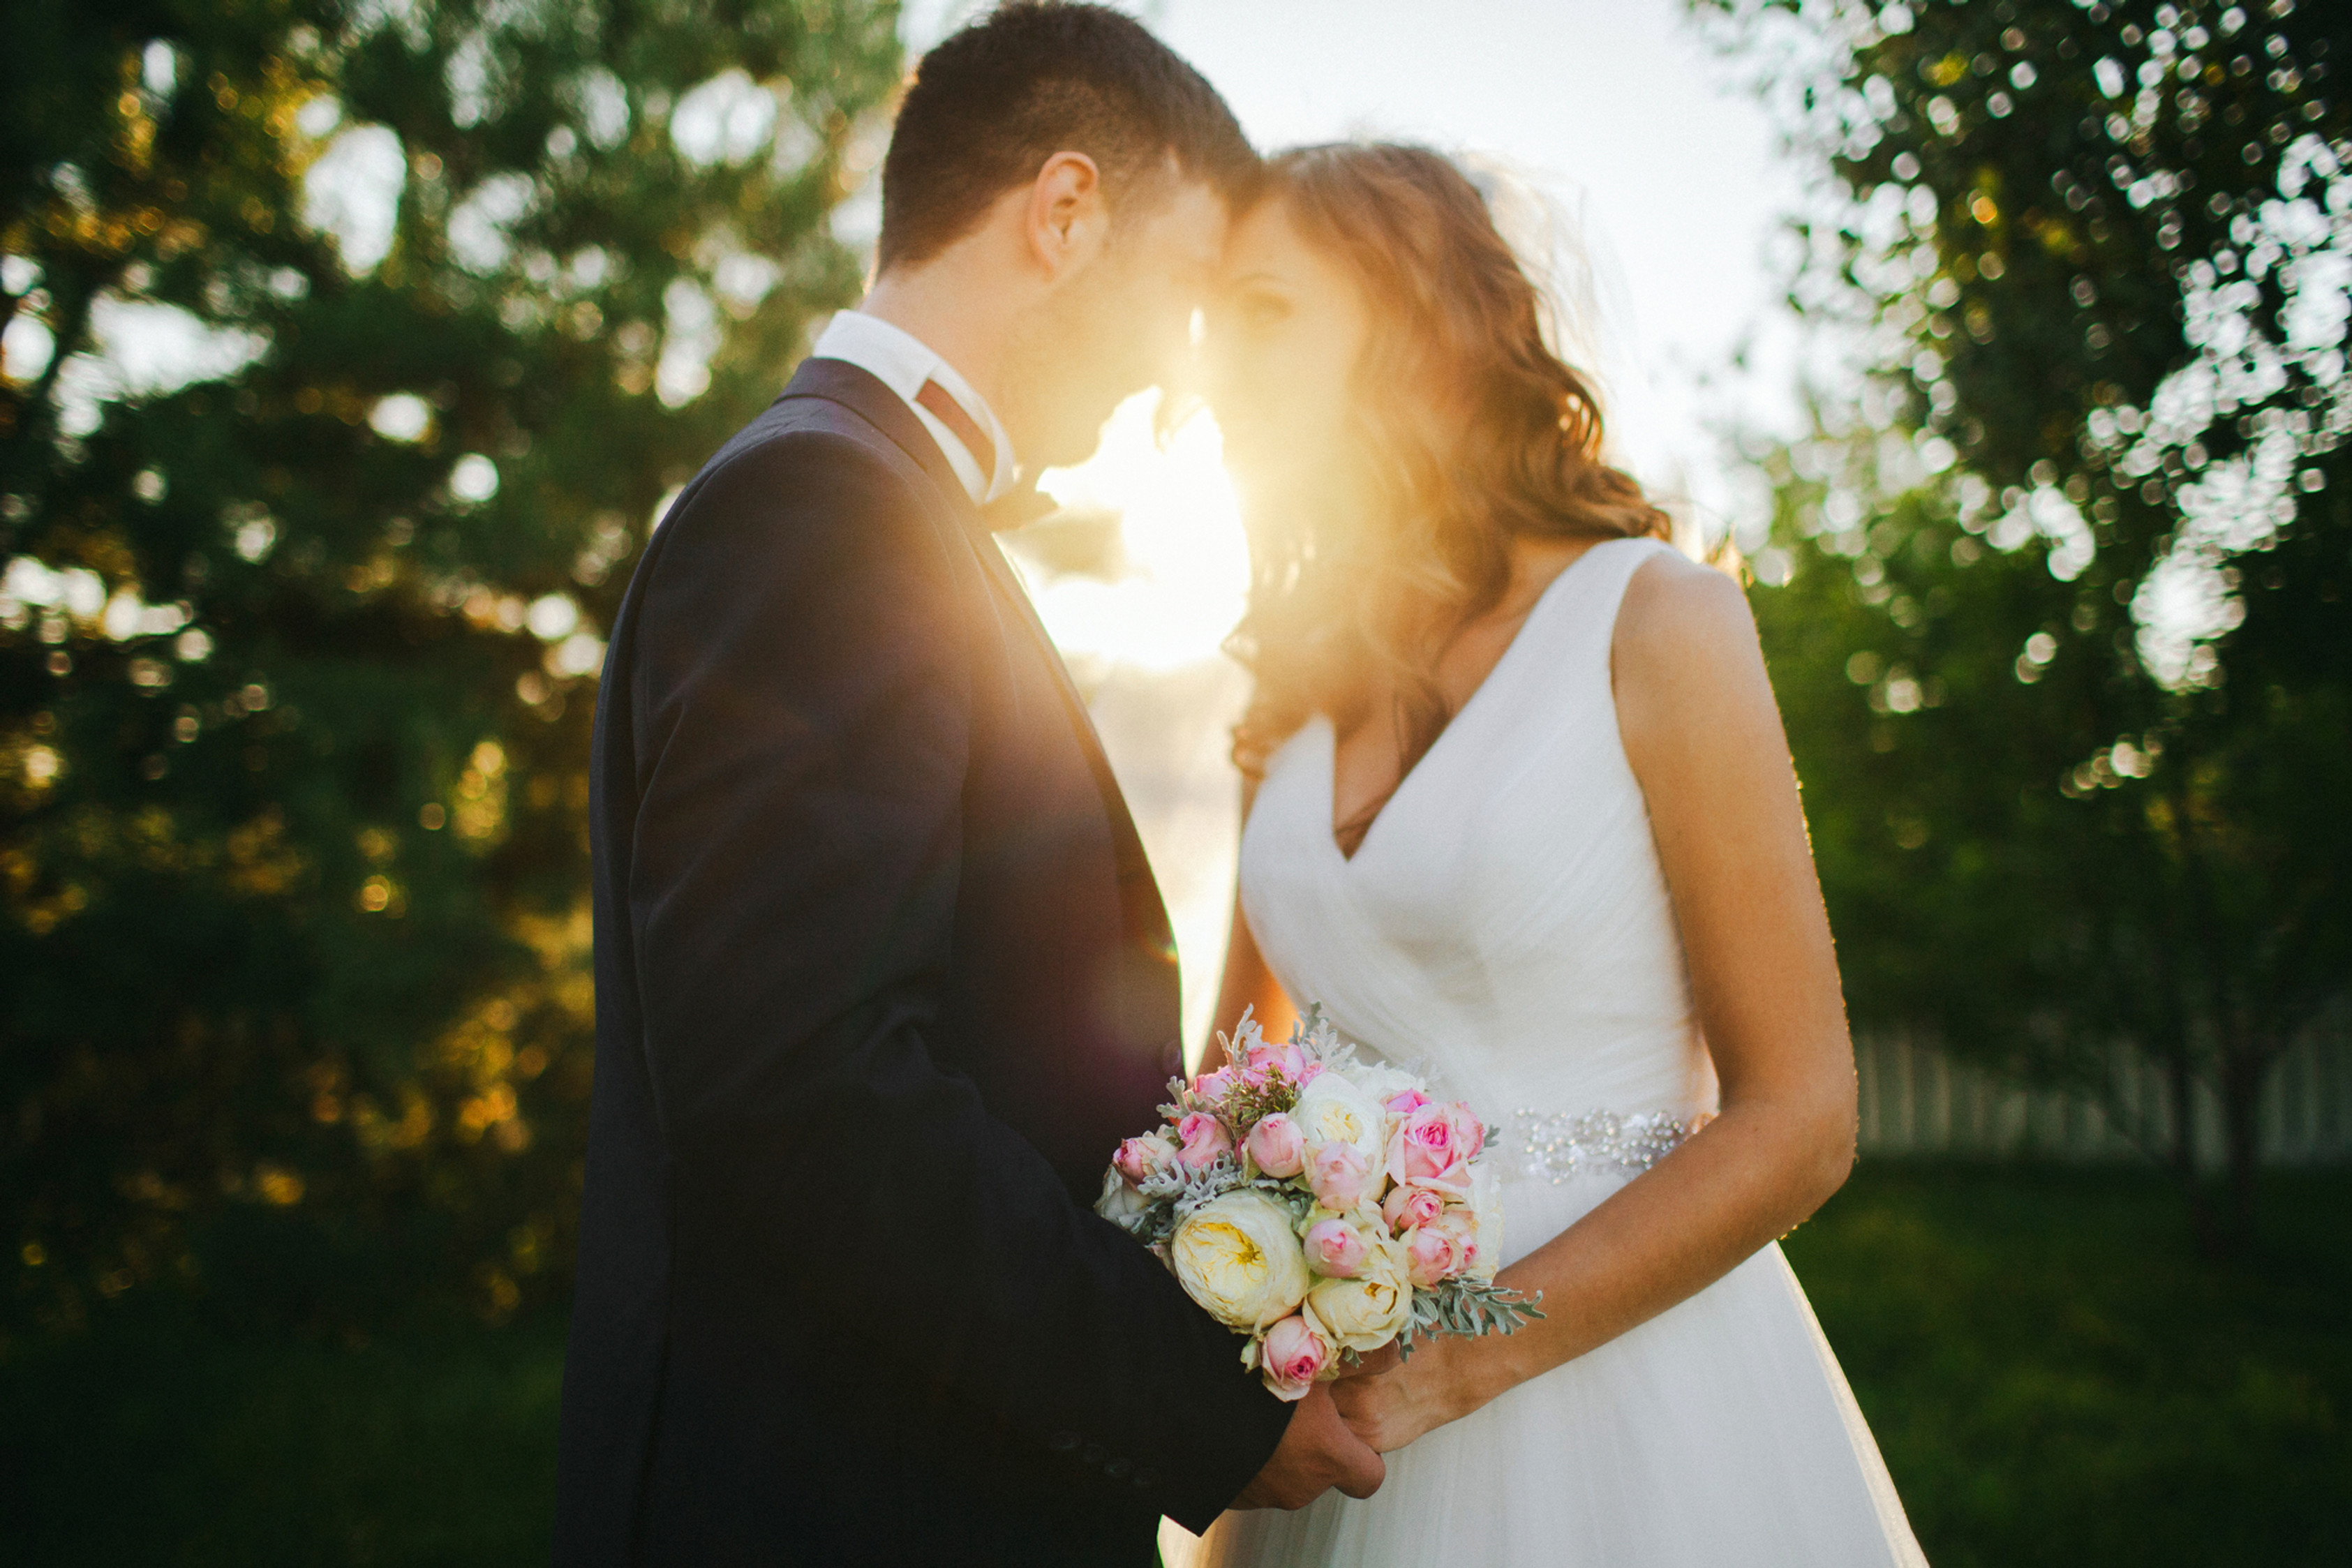 Tying the Knot/ Month of Planning